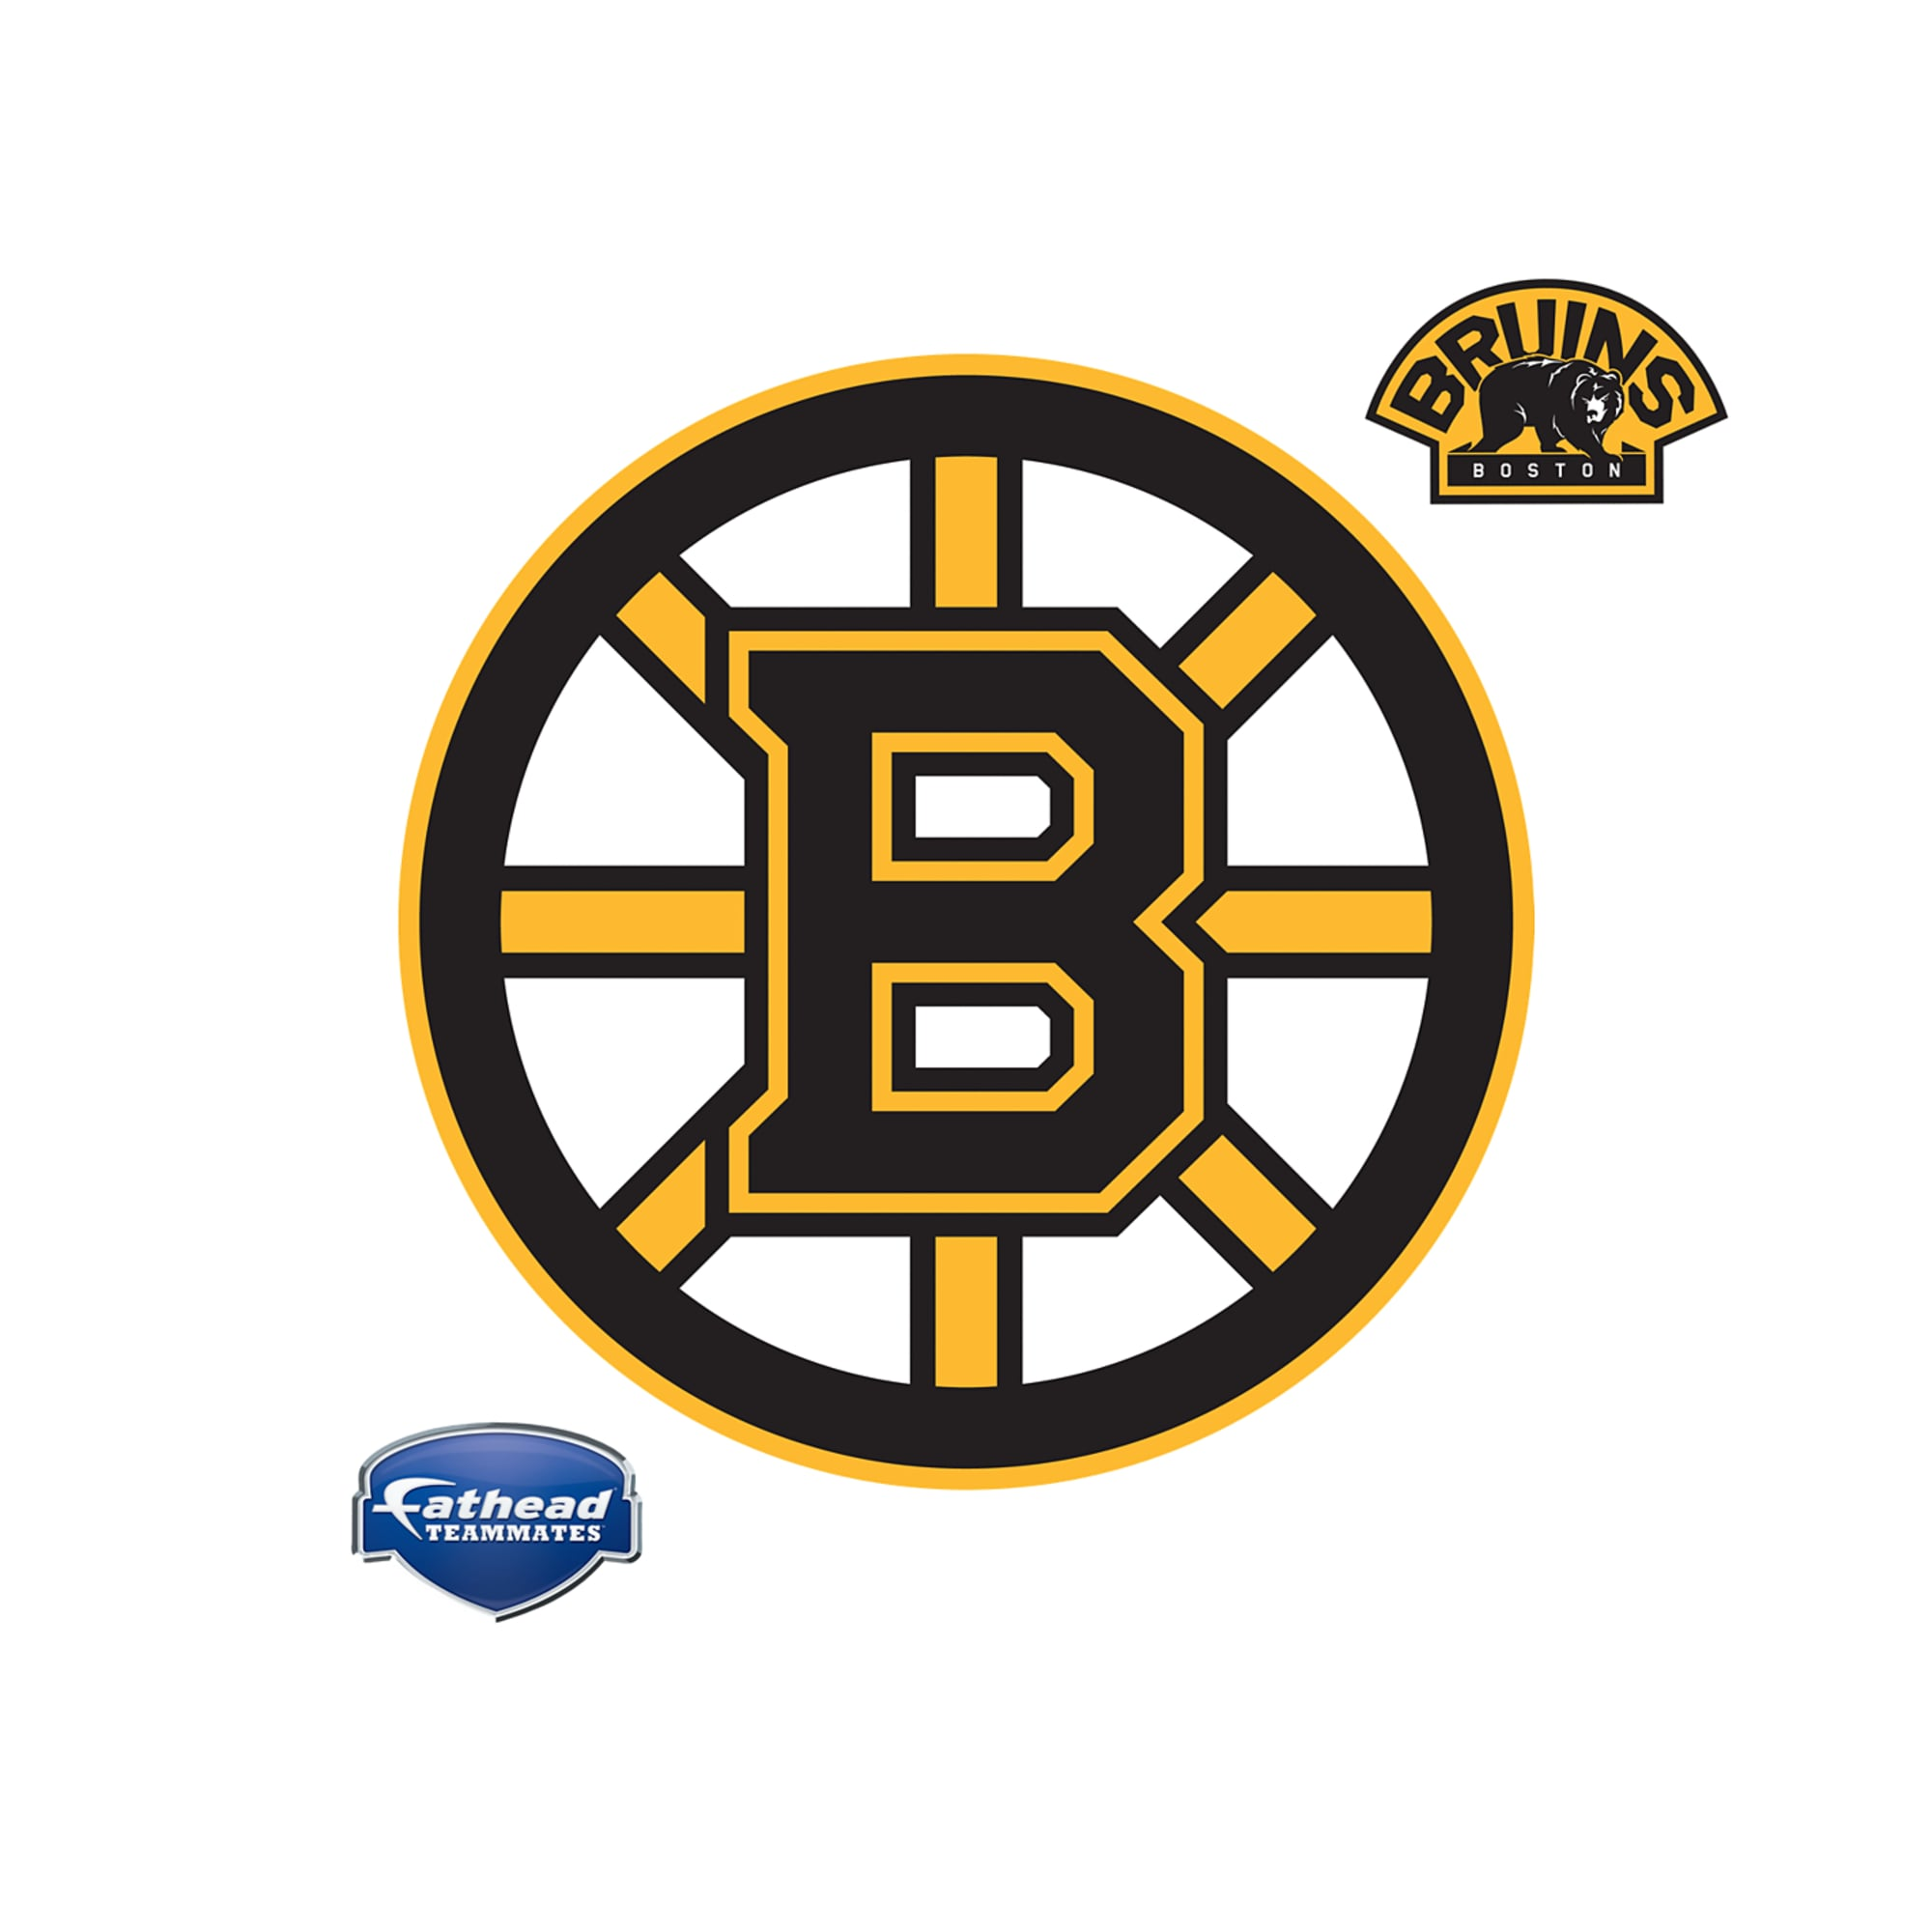 Boston Bruins Logo Giant Officially Licensed Nhl Removable Wall